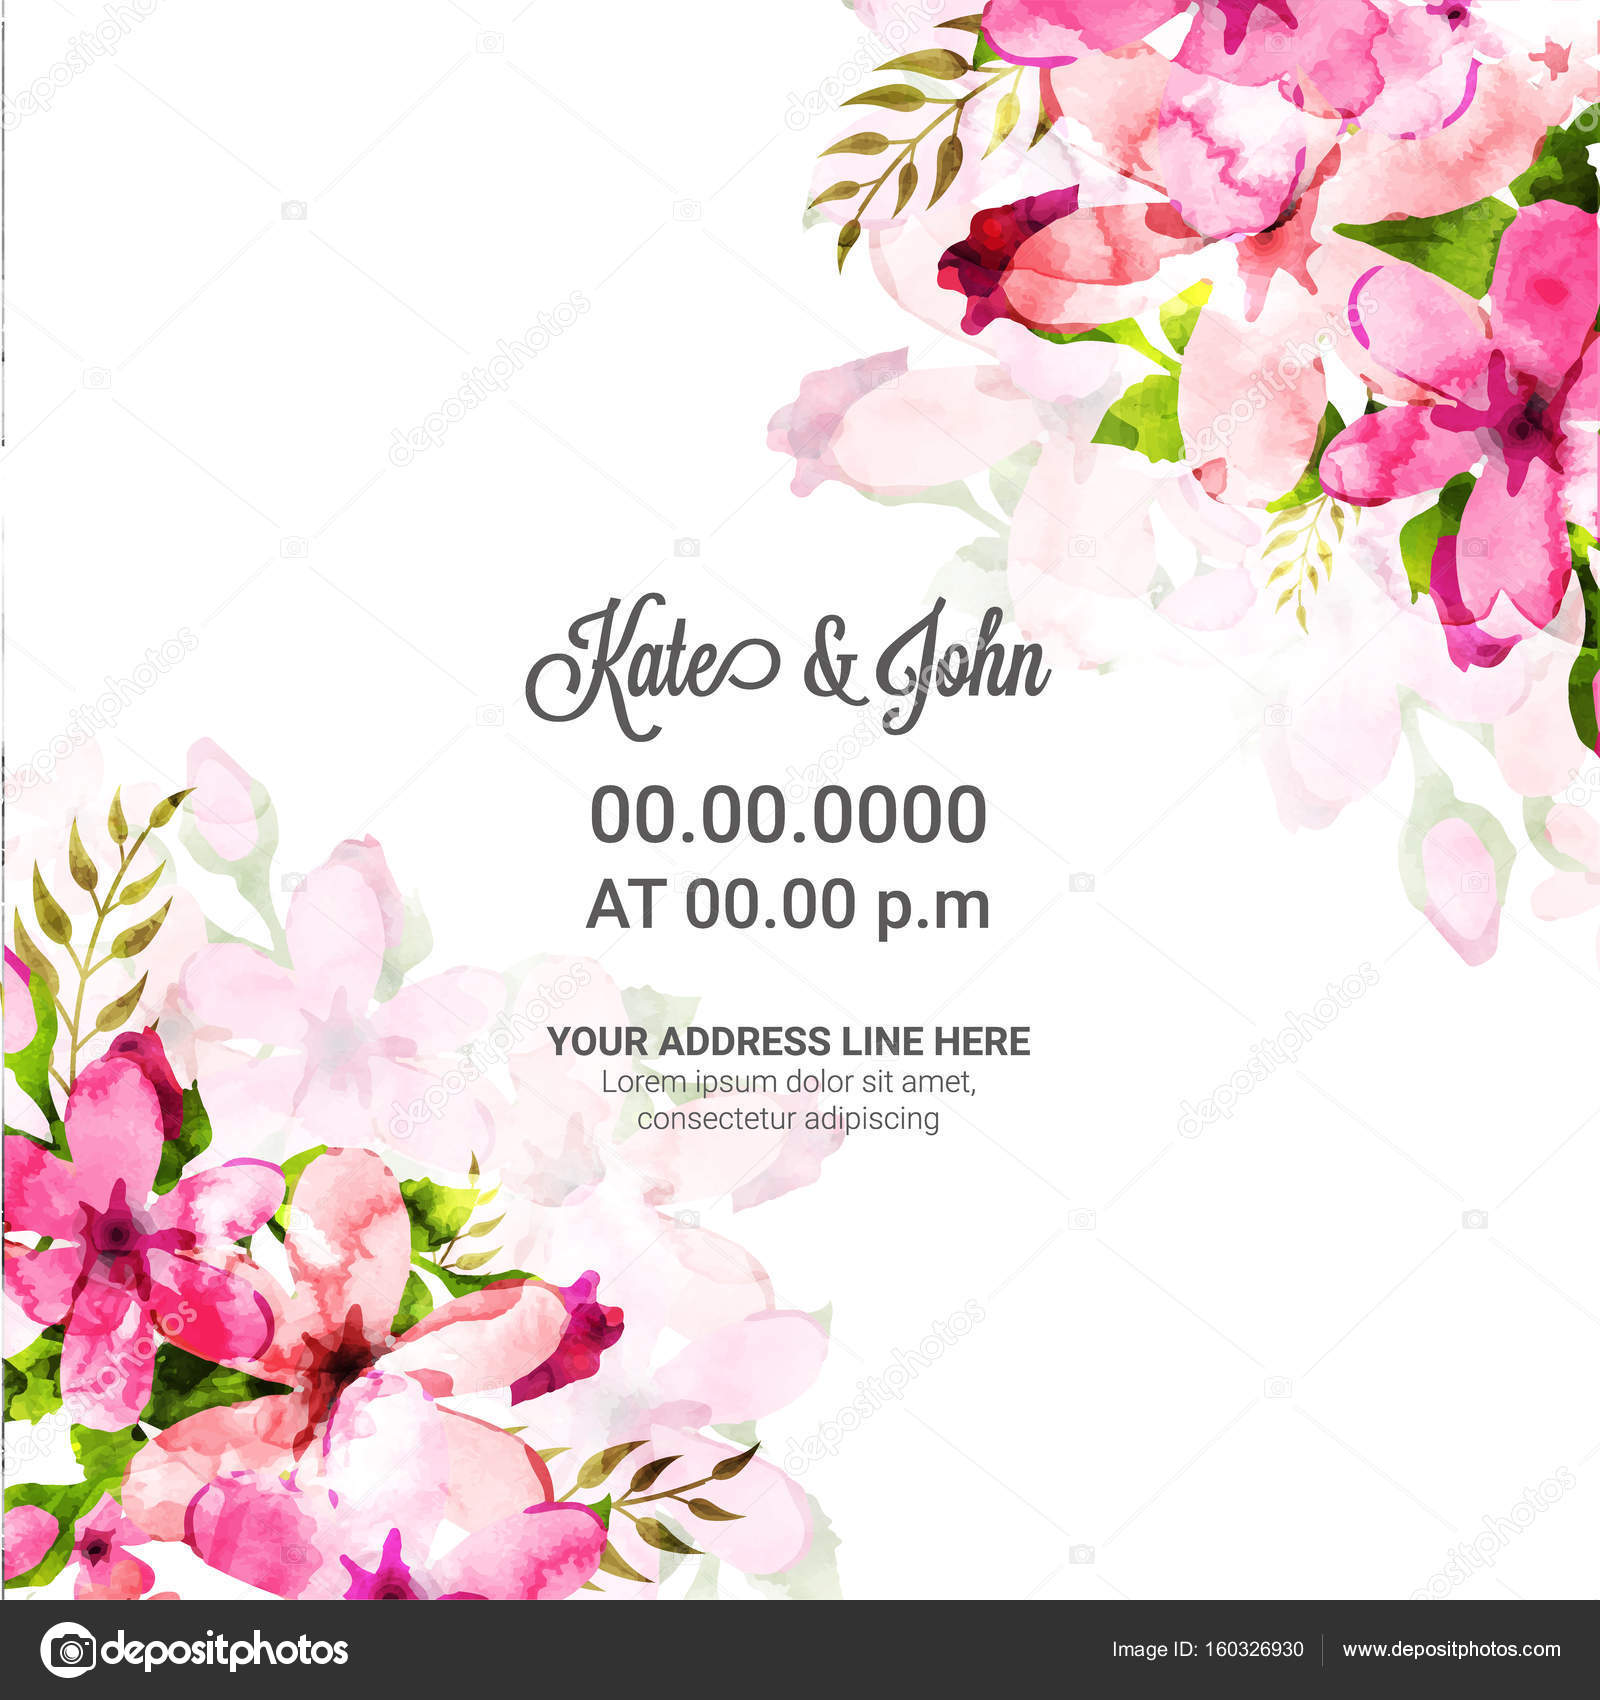 Wedding Invitation Card With Pink Watercolor Flowers Stock Vector